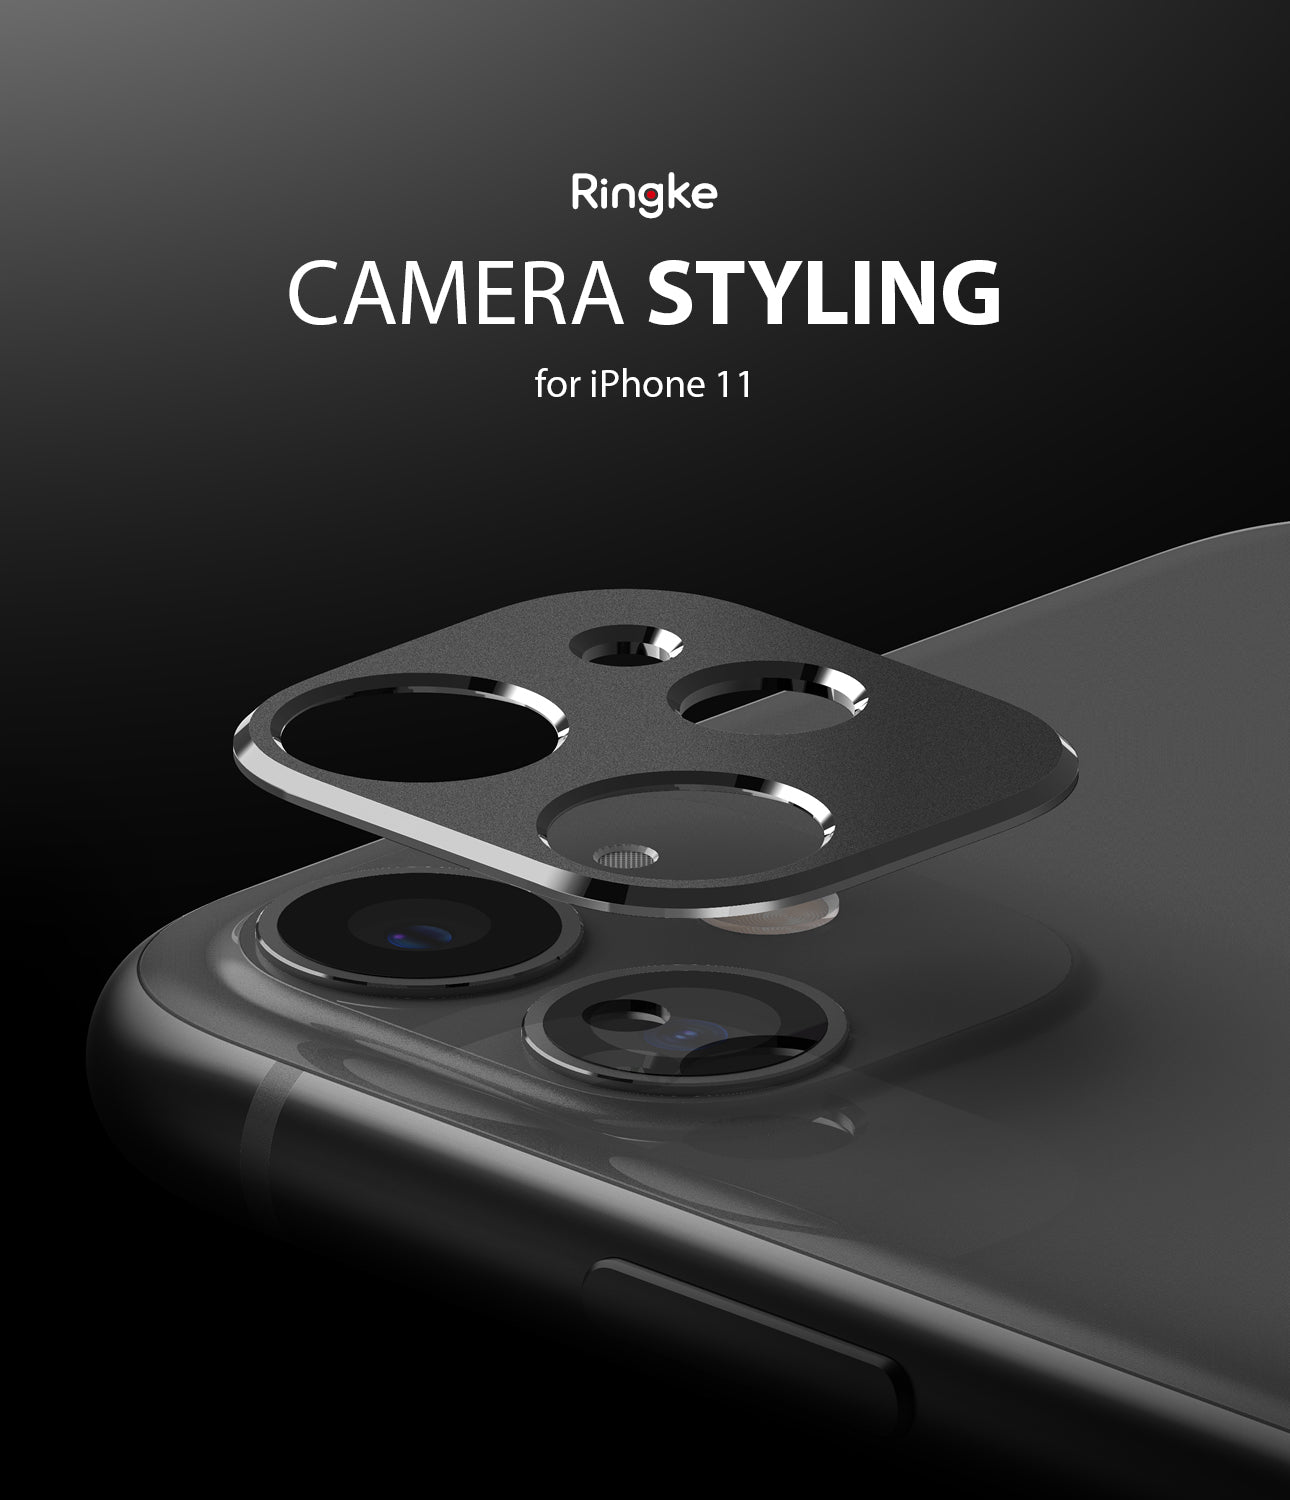 apple iphone 11 camera protector - ringke camera styling